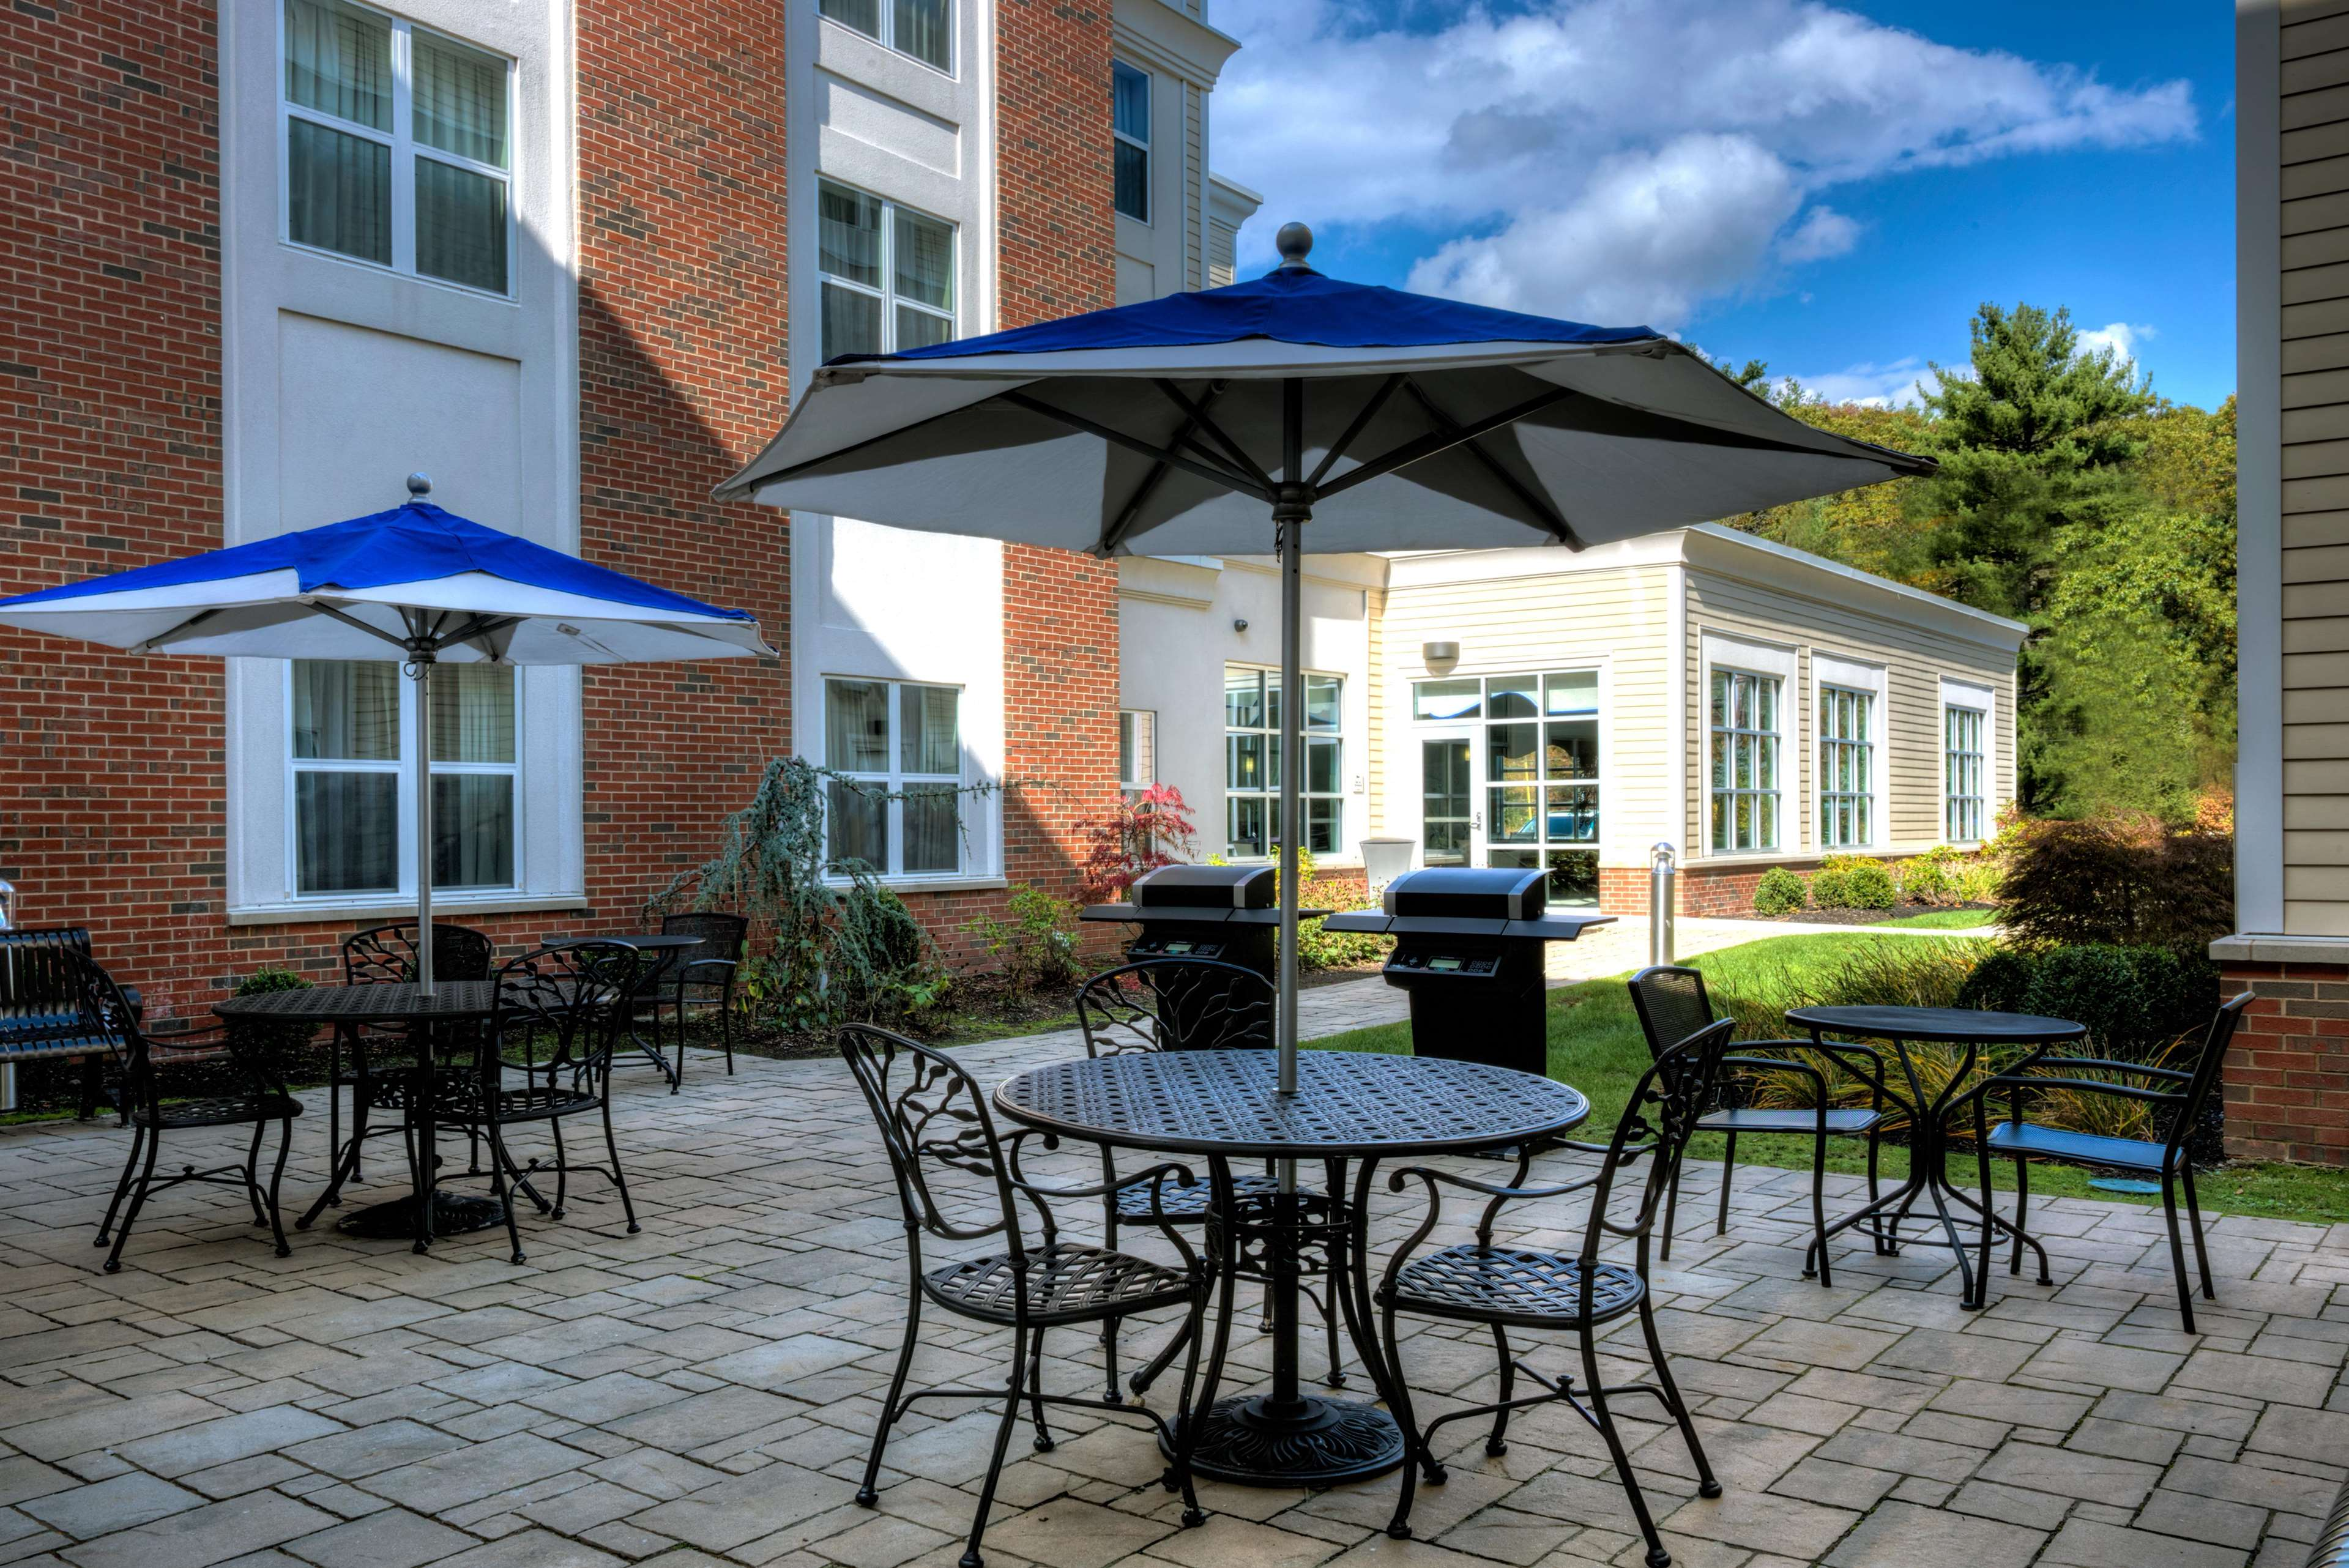 Homewood Suites by Hilton Boston/Canton, MA image 1